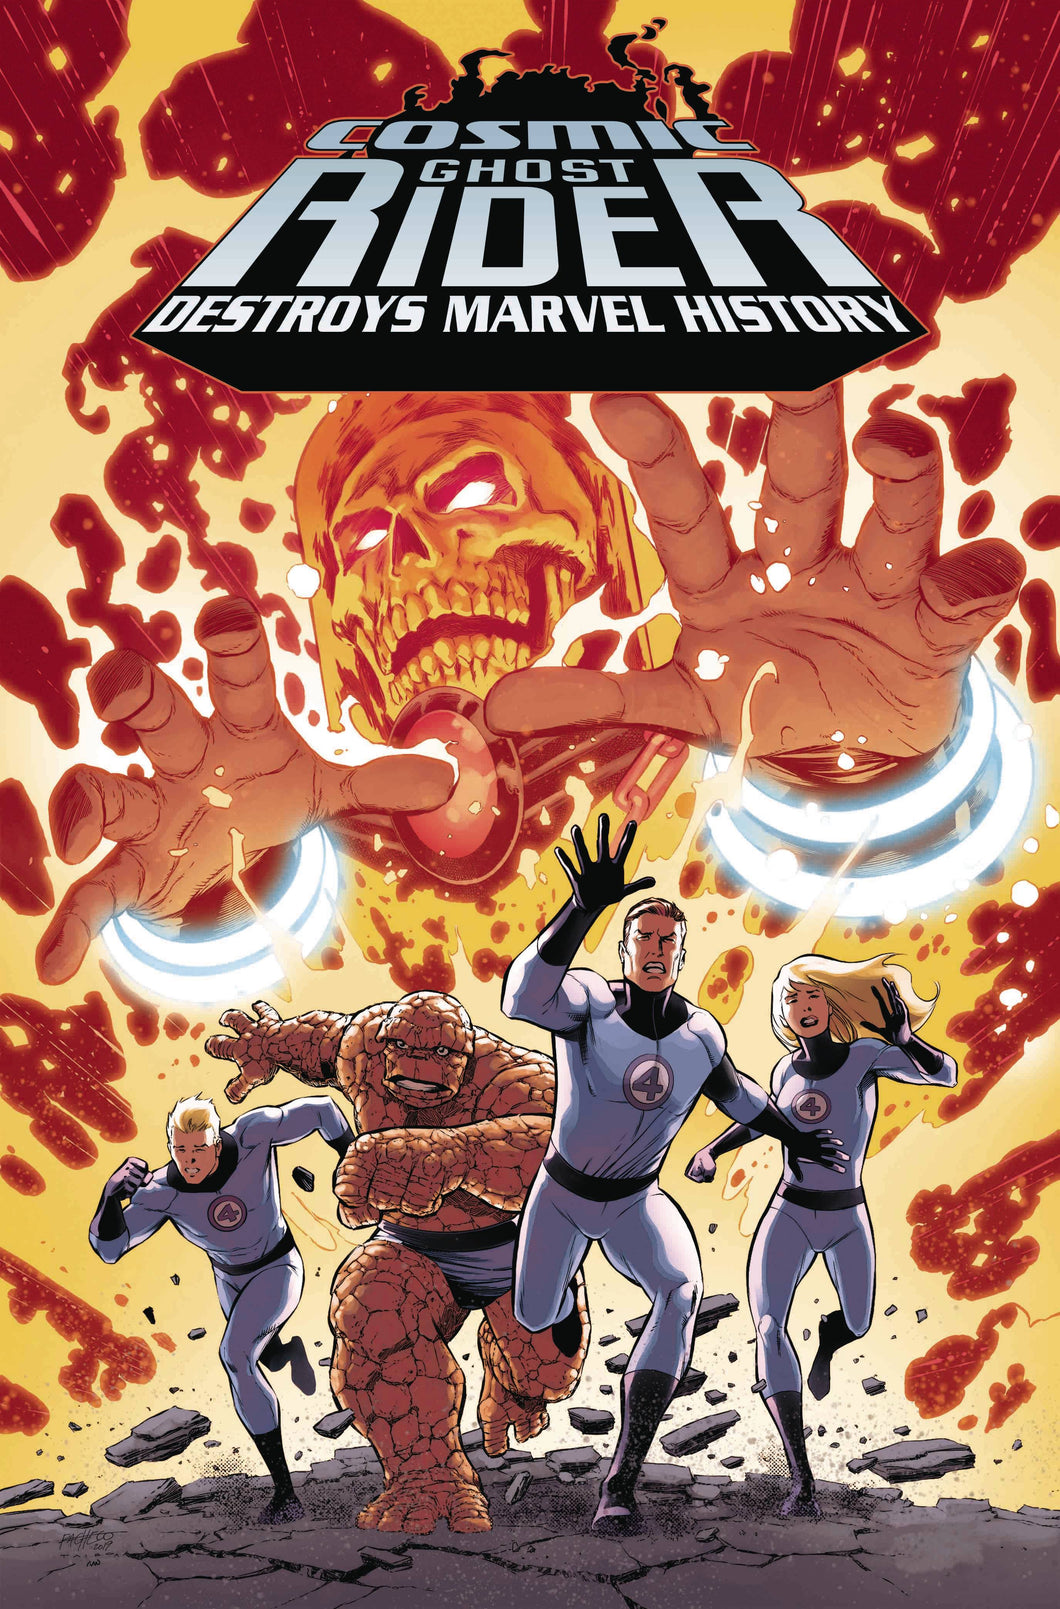 COSMIC GHOST RIDER DESTROYS MARVEL HISTORY #1 (OF 6) PACHECO 1:10 VARIANT 03/06/19 foc 02/11/19